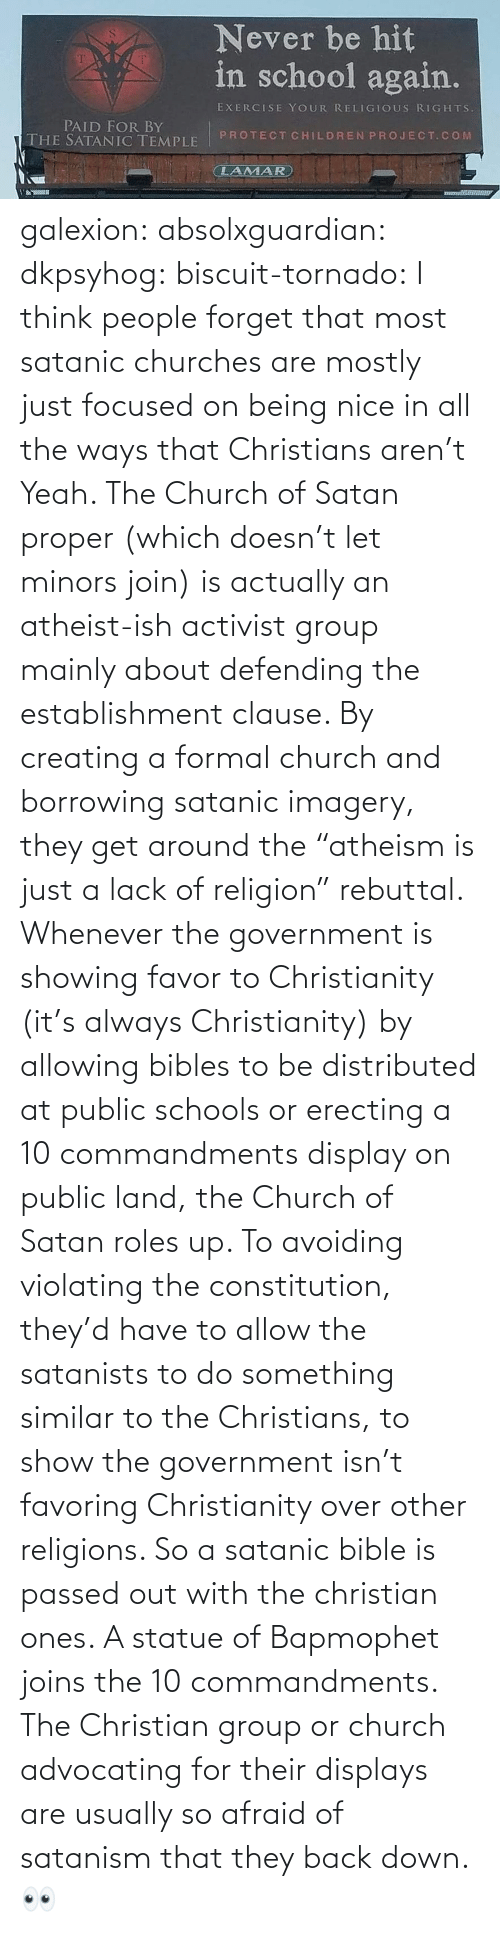 "Being Nice: galexion:  absolxguardian:  dkpsyhog:  biscuit-tornado:     I think people forget that most satanic churches are mostly just focused on being nice in all the ways that Christians aren't  Yeah. The Church of Satan proper (which doesn't let minors join) is actually an atheist-ish activist group mainly about defending the establishment clause. By creating a formal church and borrowing satanic imagery, they get around the ""atheism is just a lack of religion"" rebuttal. Whenever the government is showing favor to Christianity (it's always Christianity) by allowing bibles to be distributed at public schools or erecting a 10 commandments display on public land, the Church of Satan roles up. To avoiding violating the constitution, they'd have to allow the satanists to do something similar to the Christians, to show the government isn't favoring Christianity over other religions. So a satanic bible is passed out with the christian ones. A statue of Bapmophet joins the 10 commandments. The Christian group or church advocating for their displays are usually so afraid of satanism that they back down.   👀"